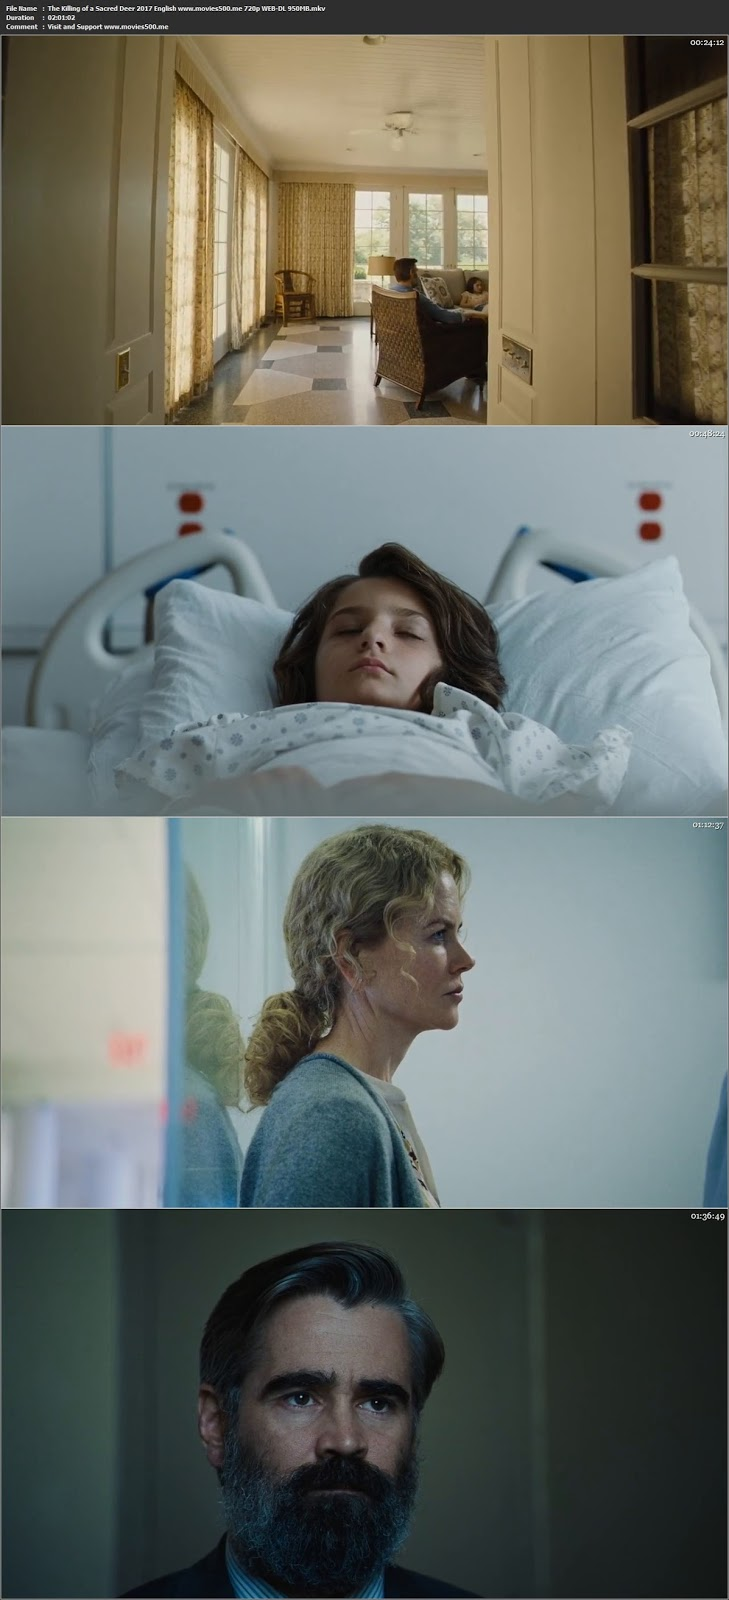 The Killing of a Sacred Deer 2017 English Full Movie WEB DL 720p at sweac.org